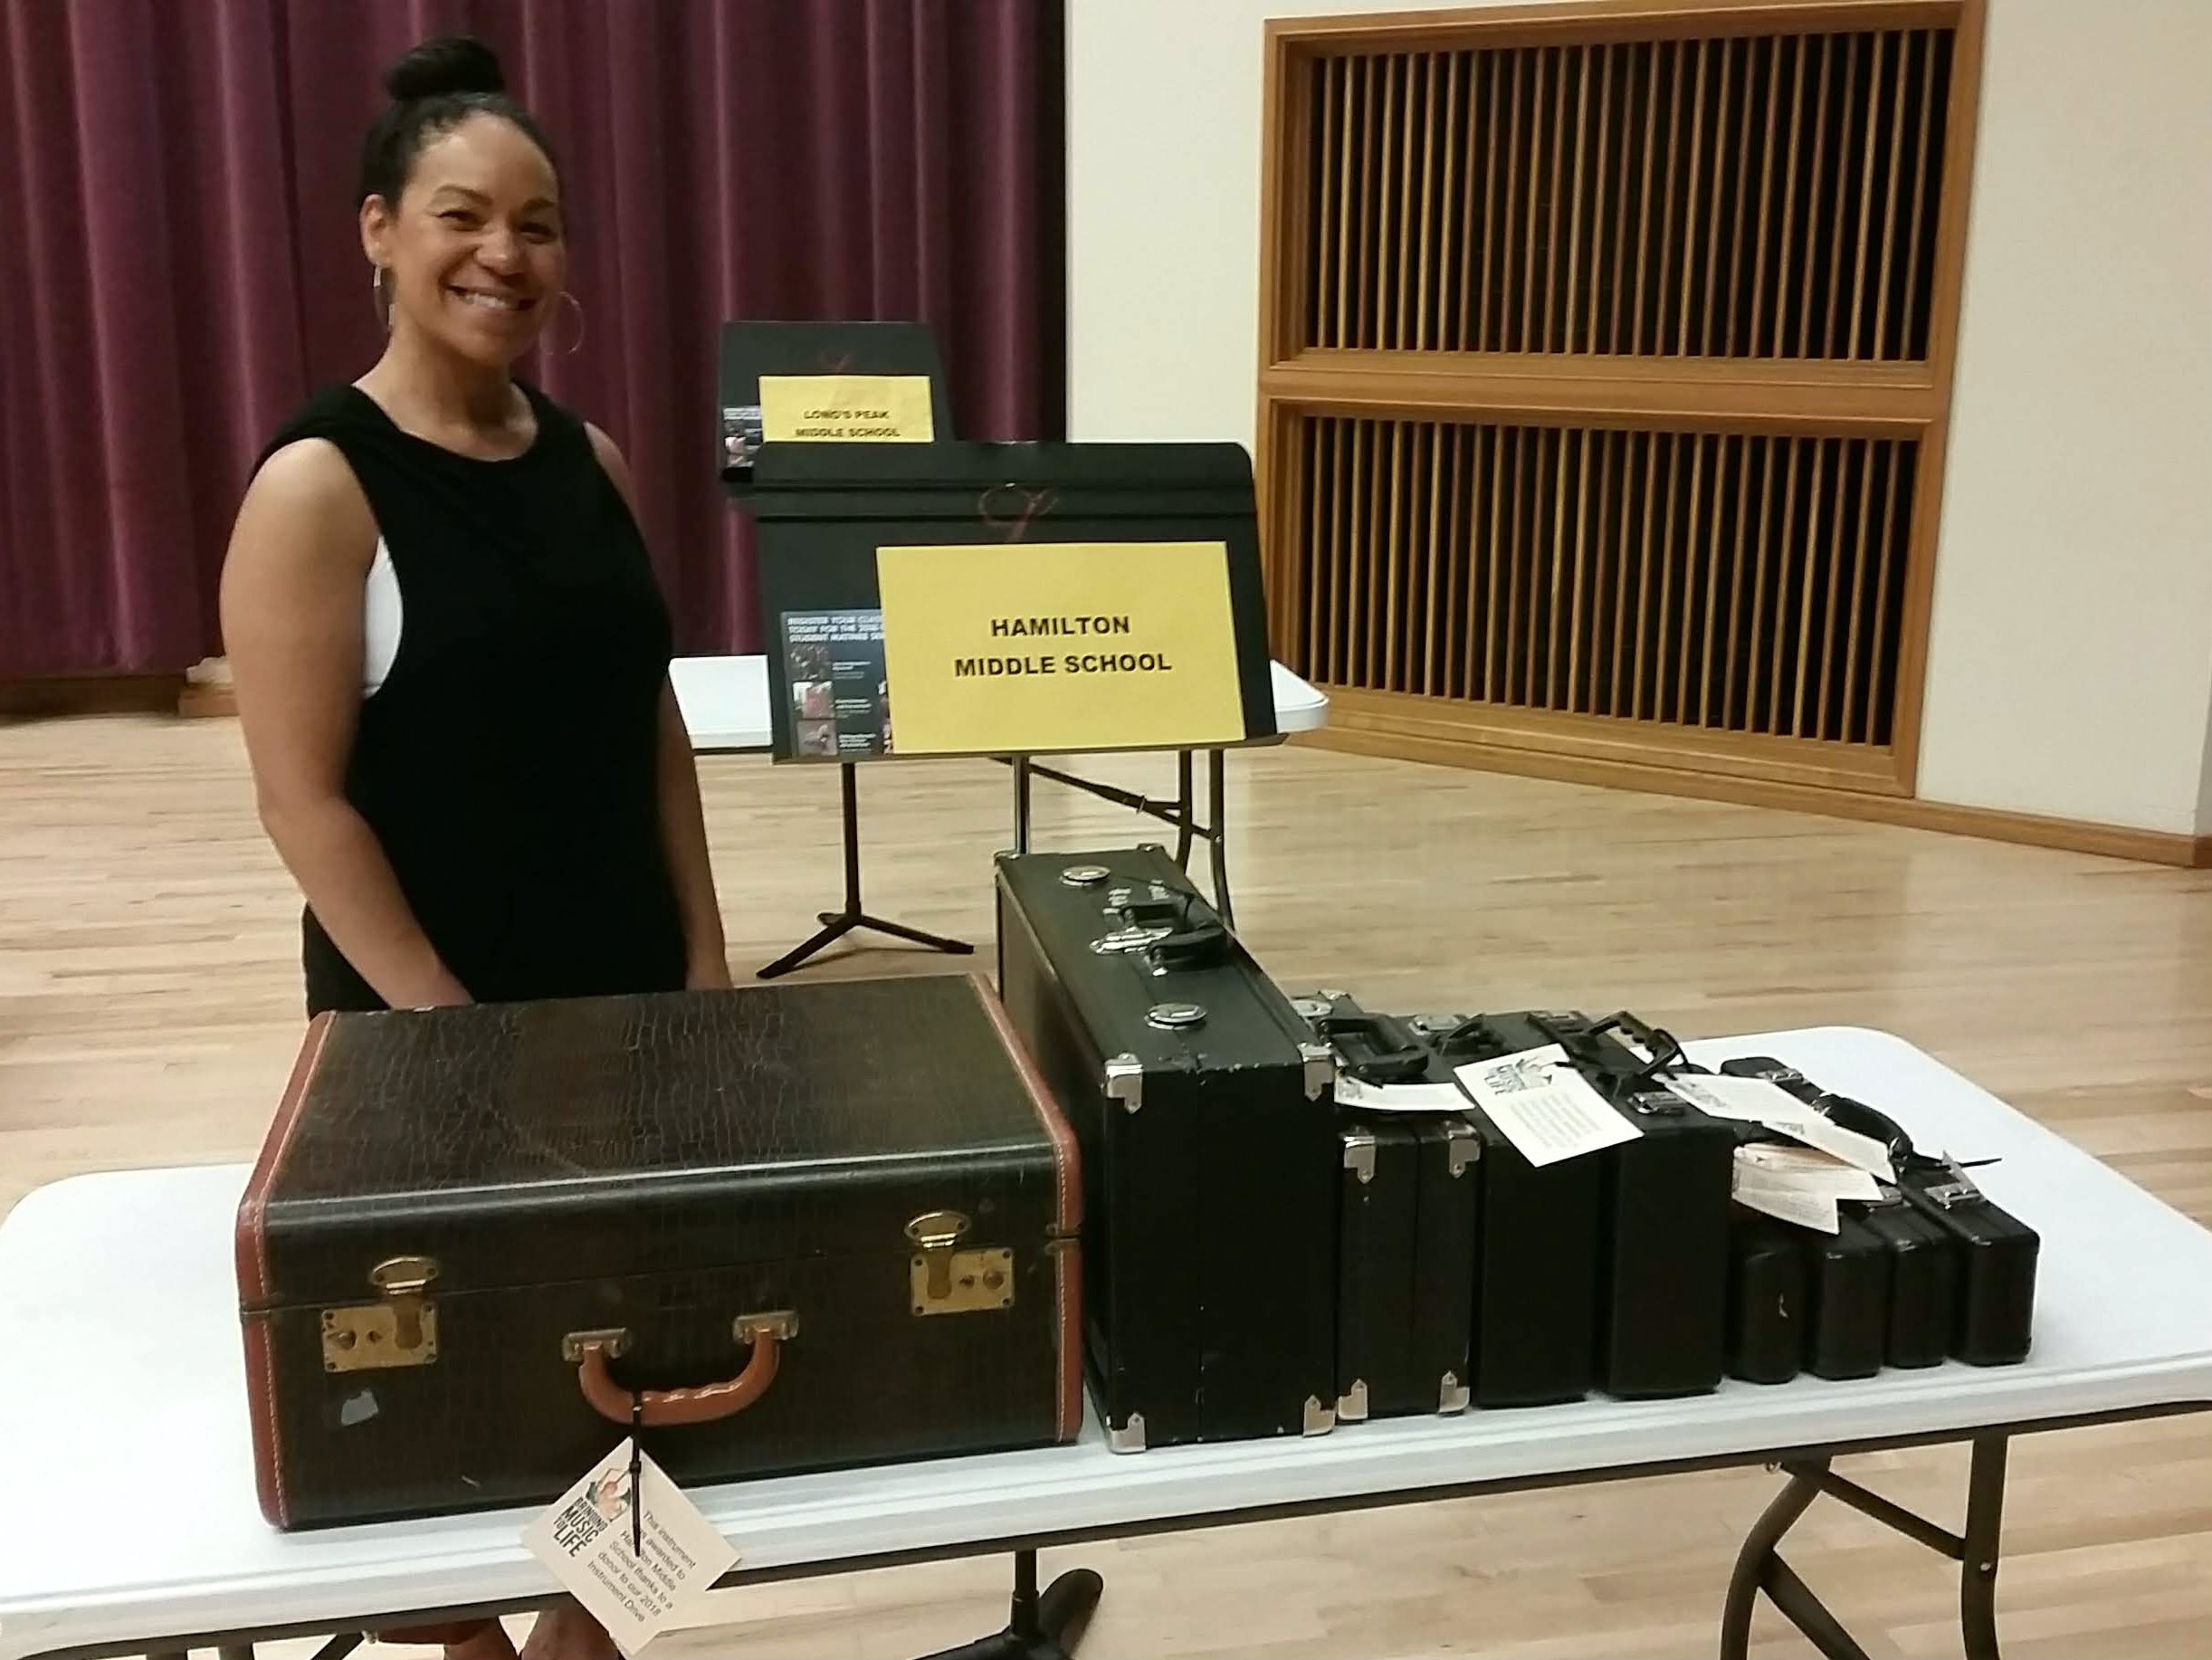 <p>Hamilton Middle School band teacher Priscilla Shaw poses with instruments she's picking up from the Bringing Music to Life instrument distribution day.</p>